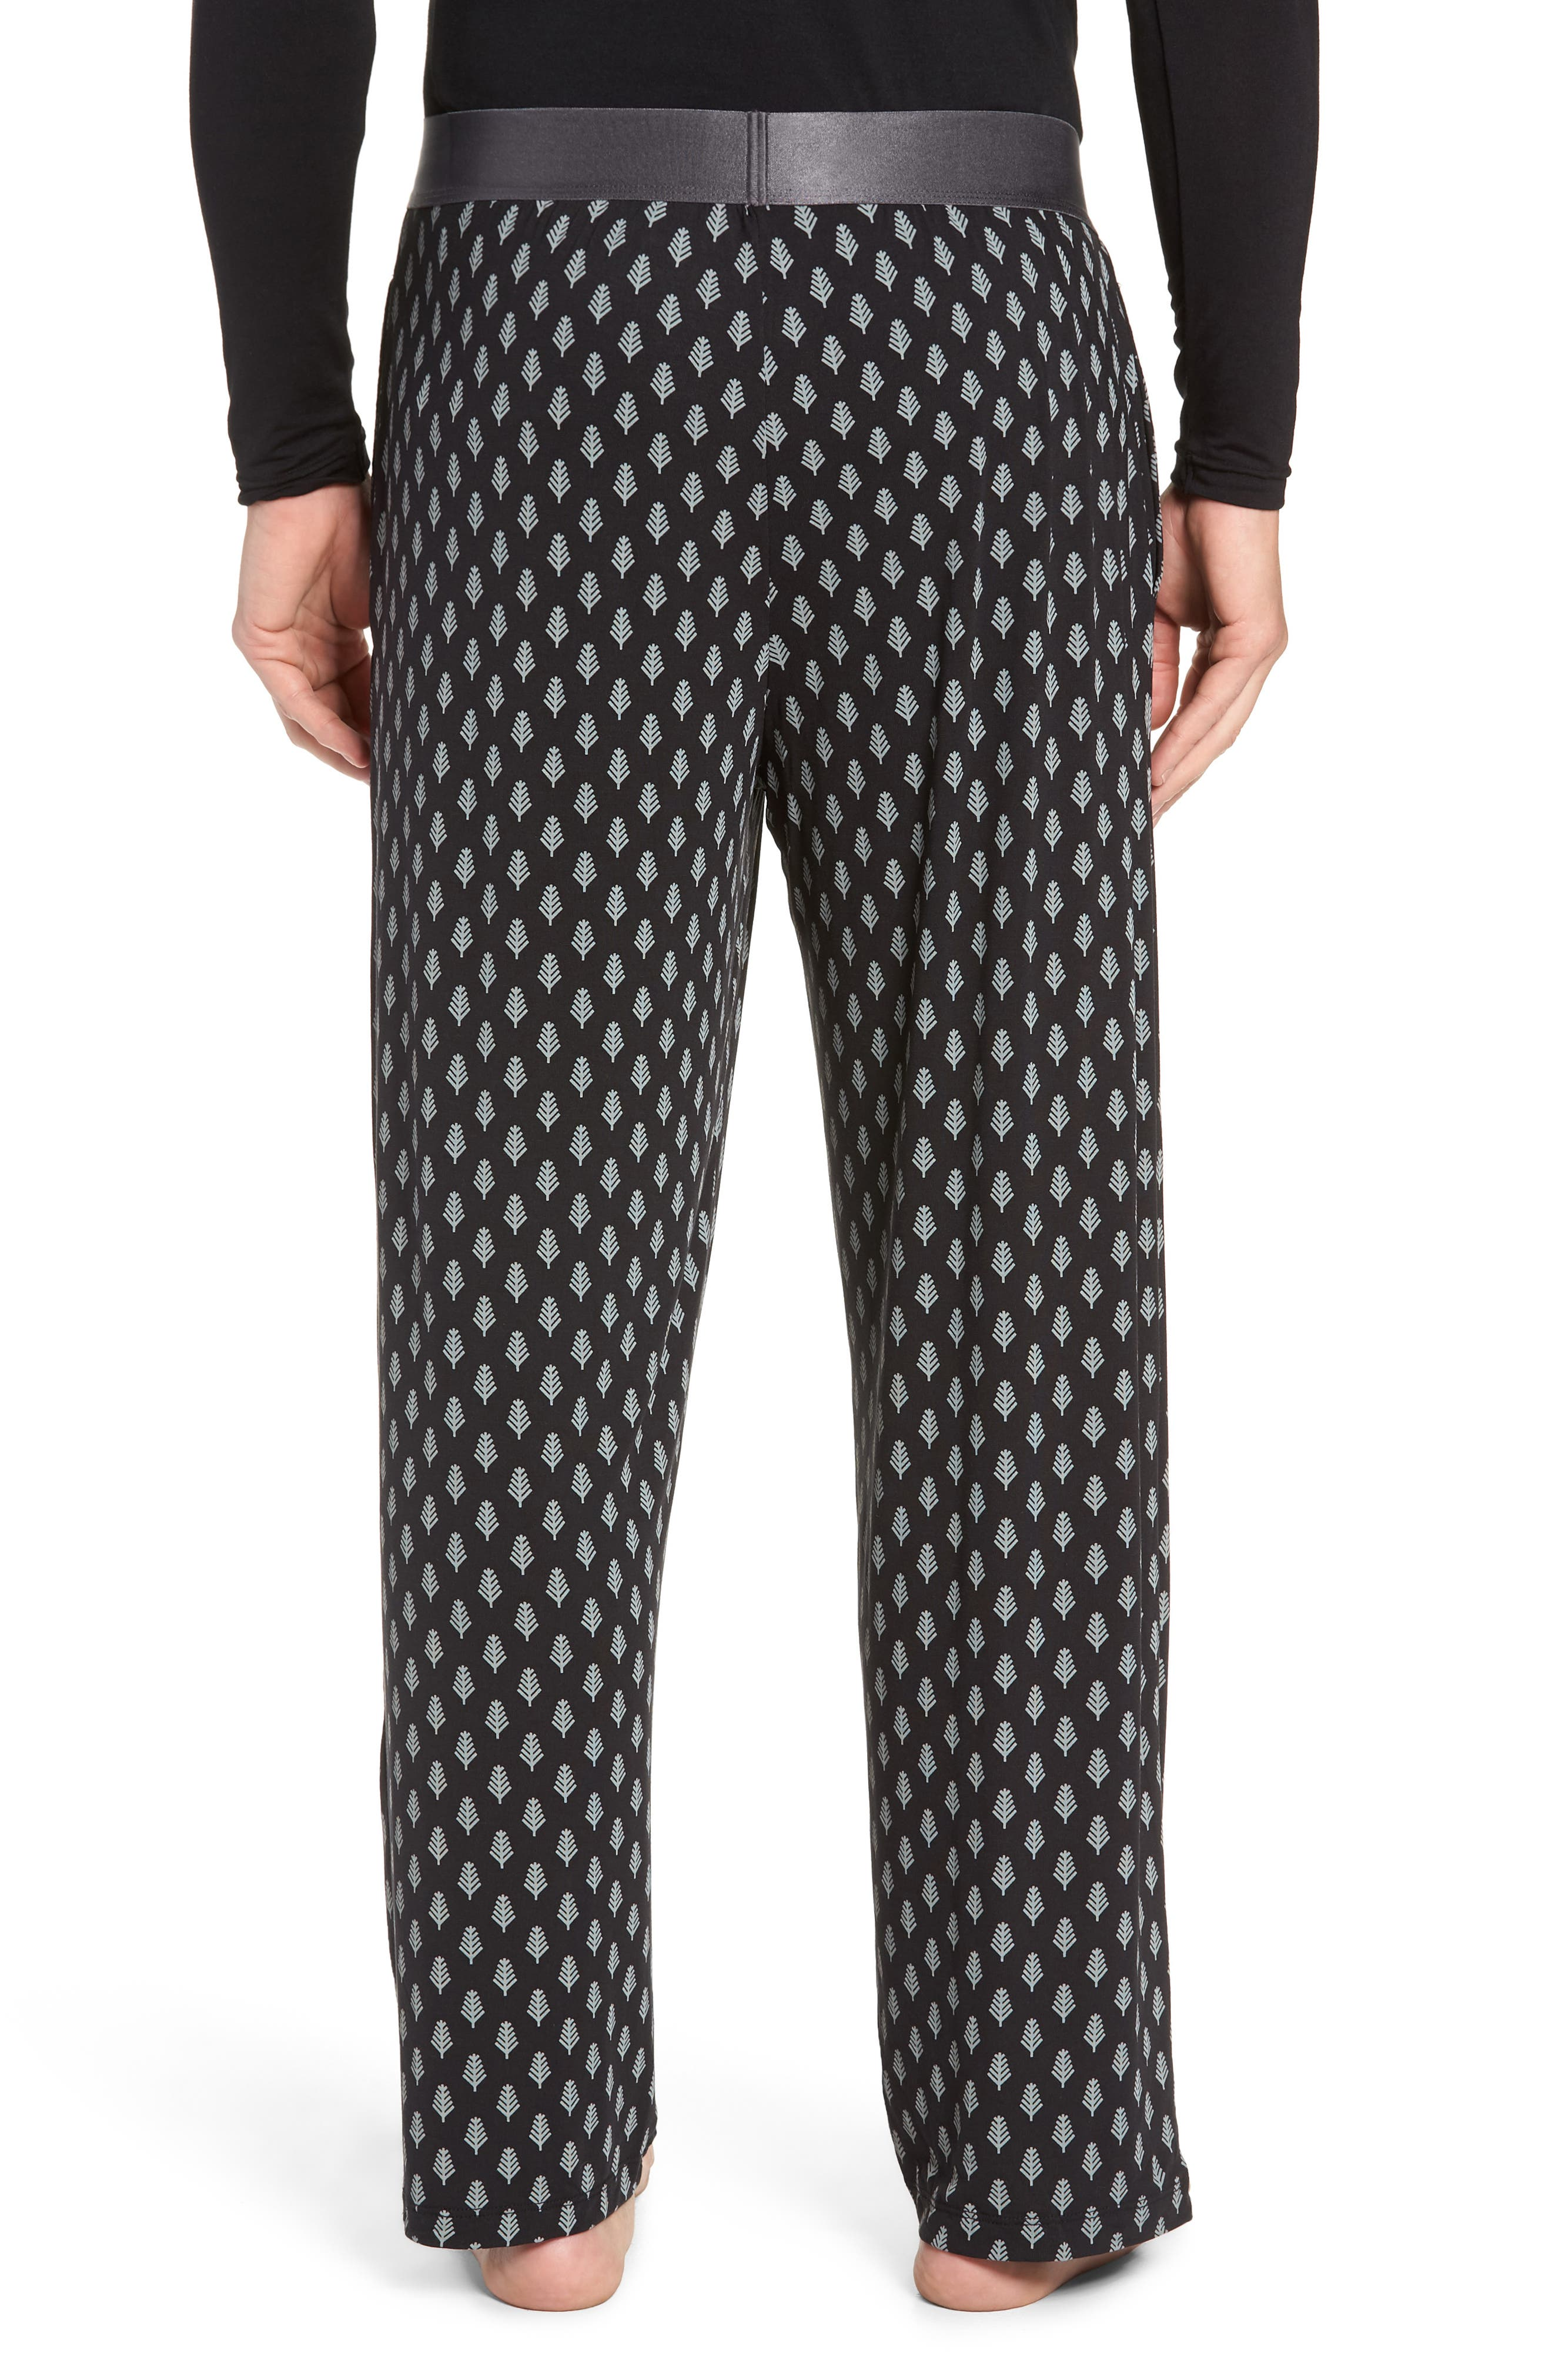 Second Skin Lounge Pants,                             Alternate thumbnail 2, color,                             BLACK SNOWY FOREST